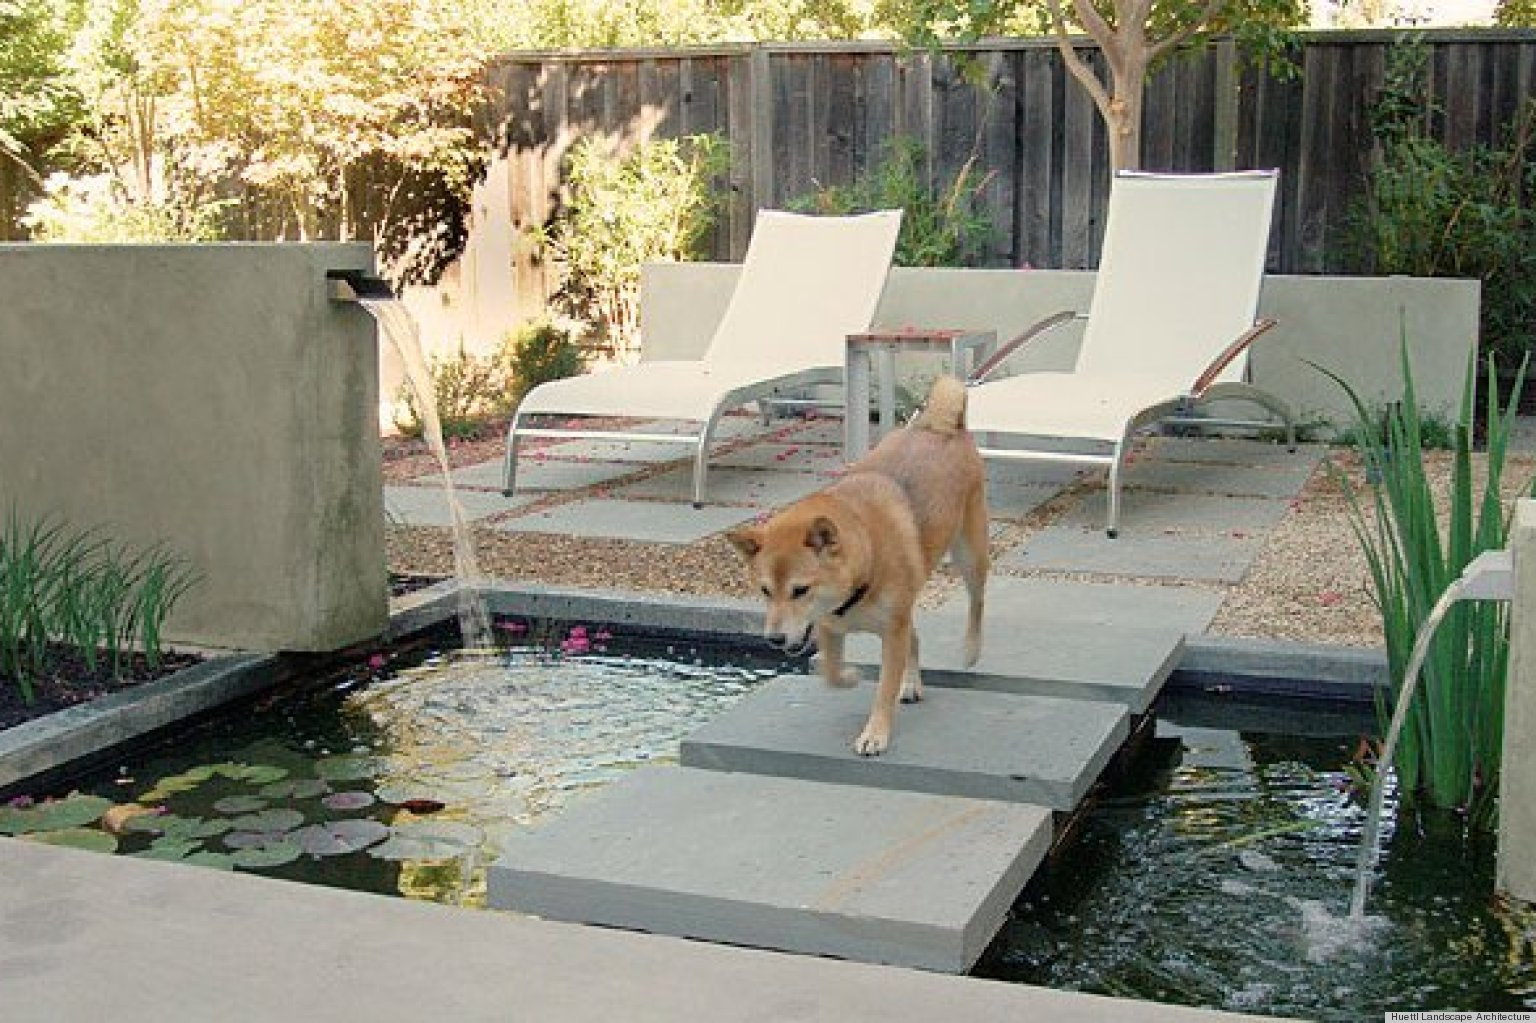 8 Backyard Ideas To Delight Your Dog Huffpost with regard to Landscaping Ideas For Backyard With Dogs